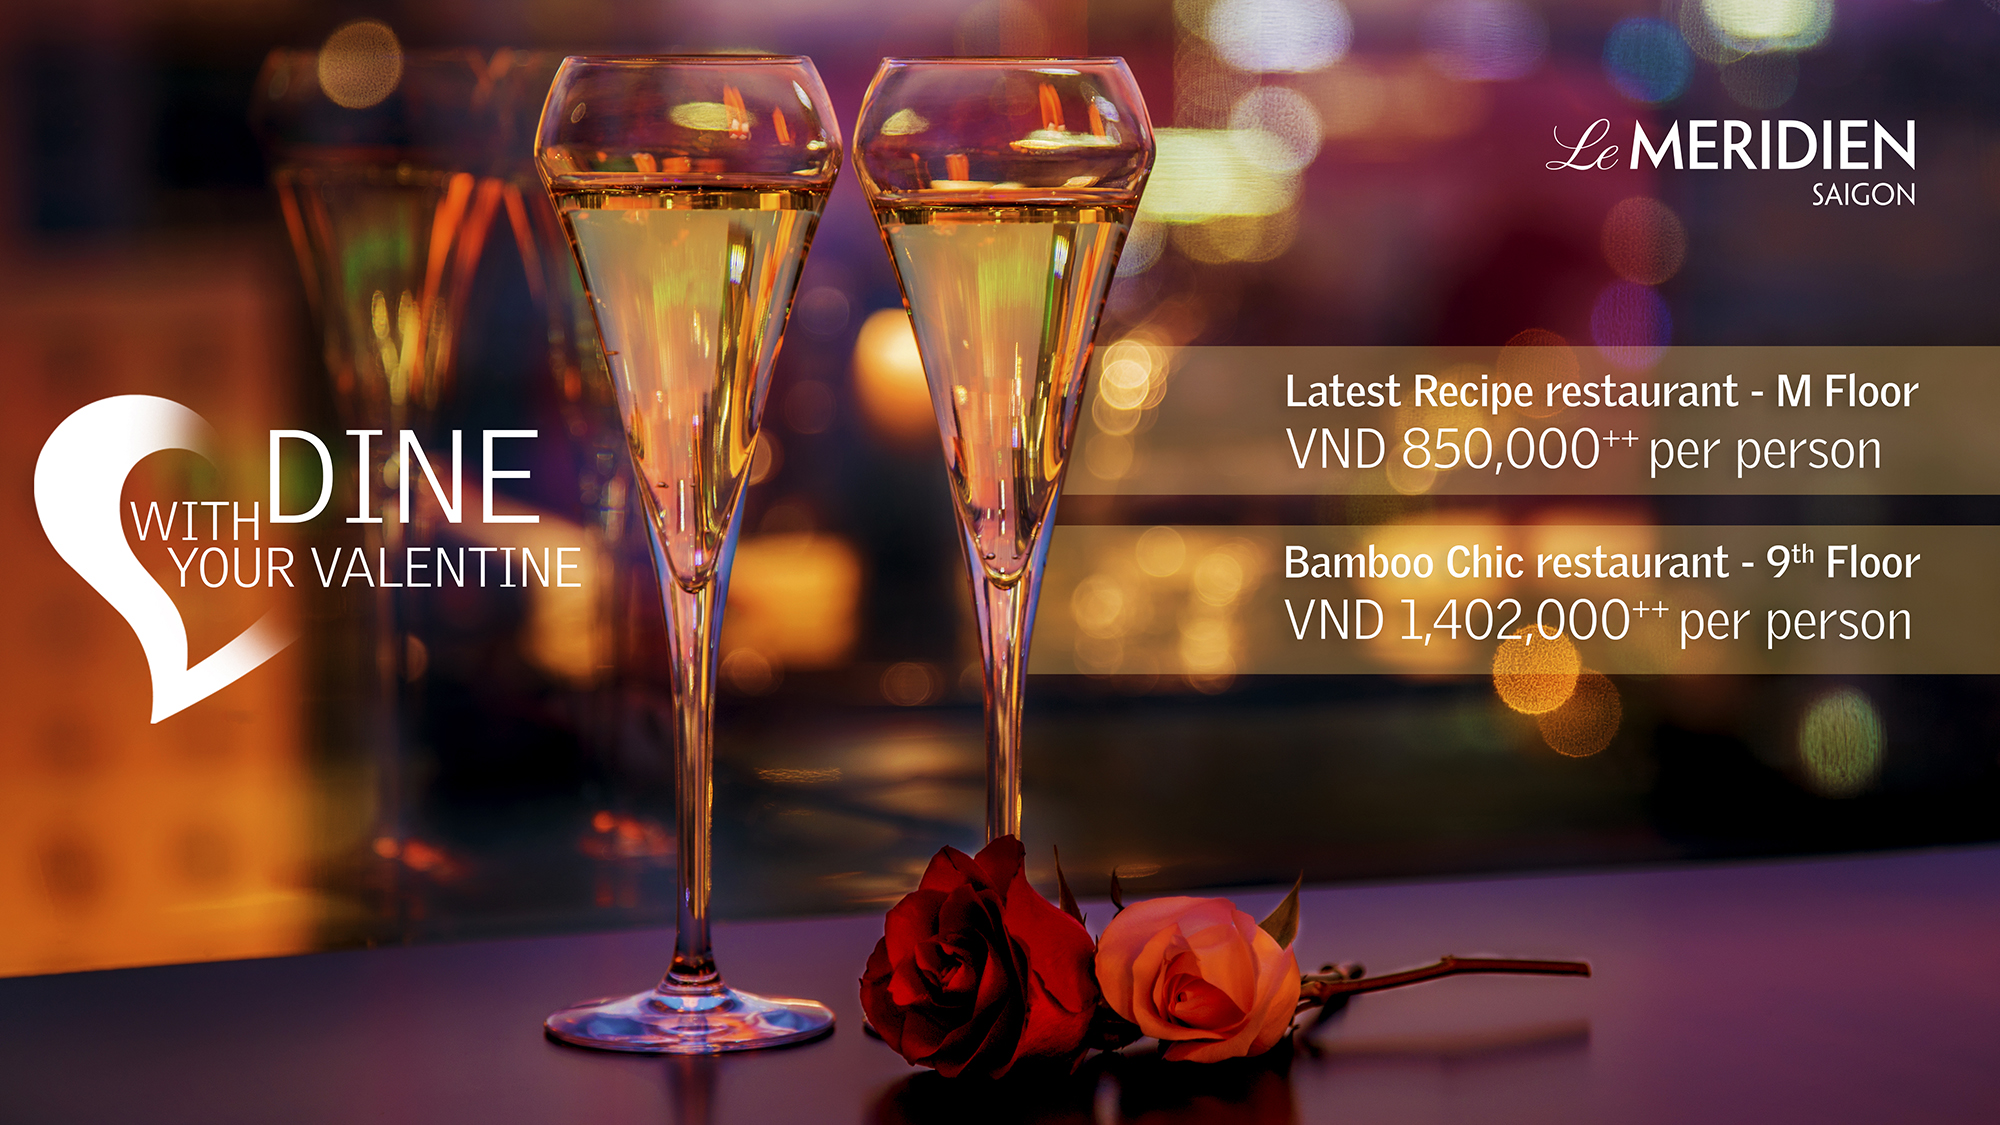 Dine With Your Valentine at Le Meridien Saigon